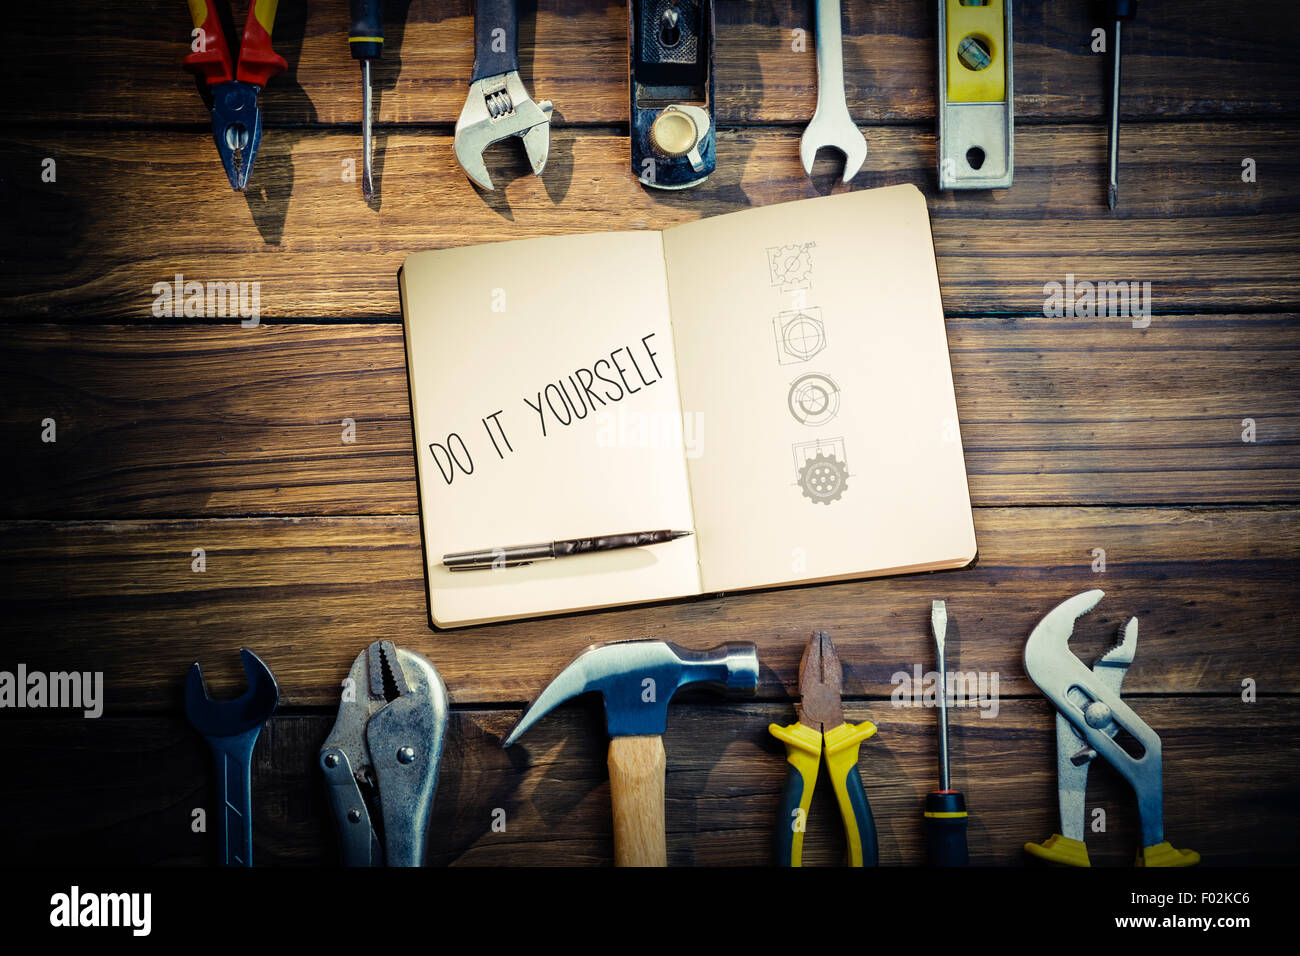 Do it yourself against blueprint - Stock Image